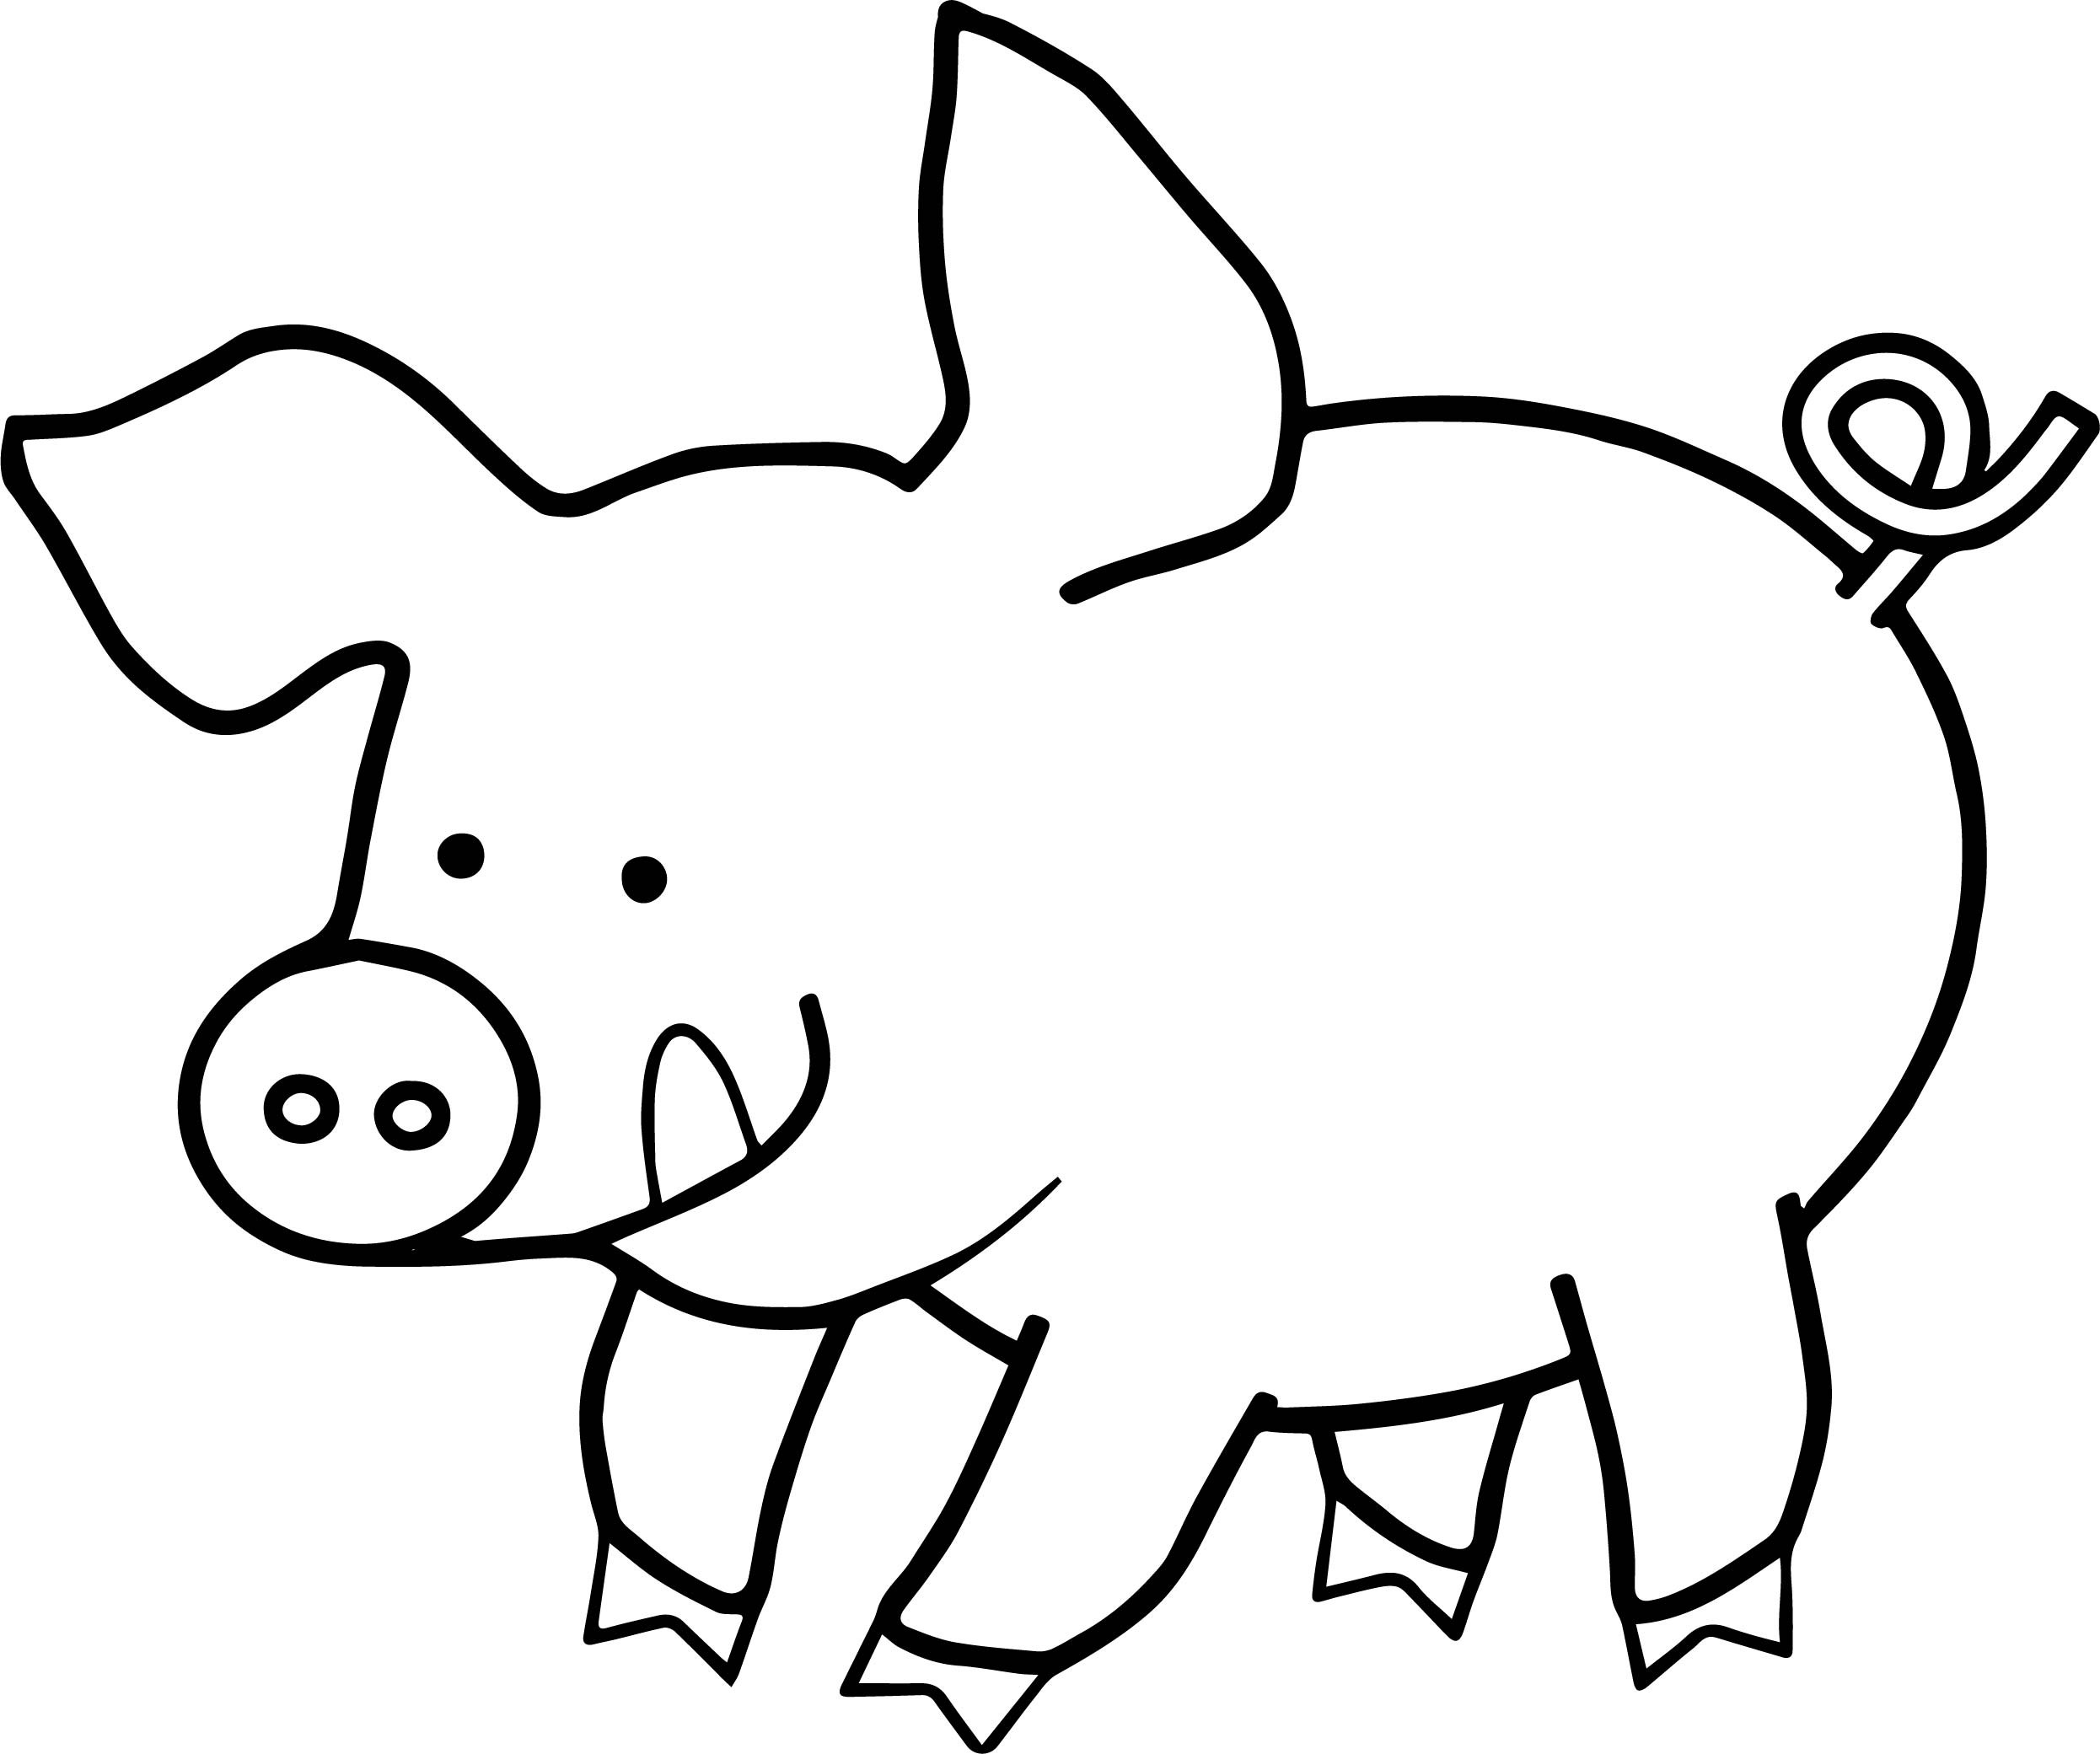 Best ideas about Pig Coloring Pages . Save or Pin Simple Pig Drawing at GetDrawings Now.